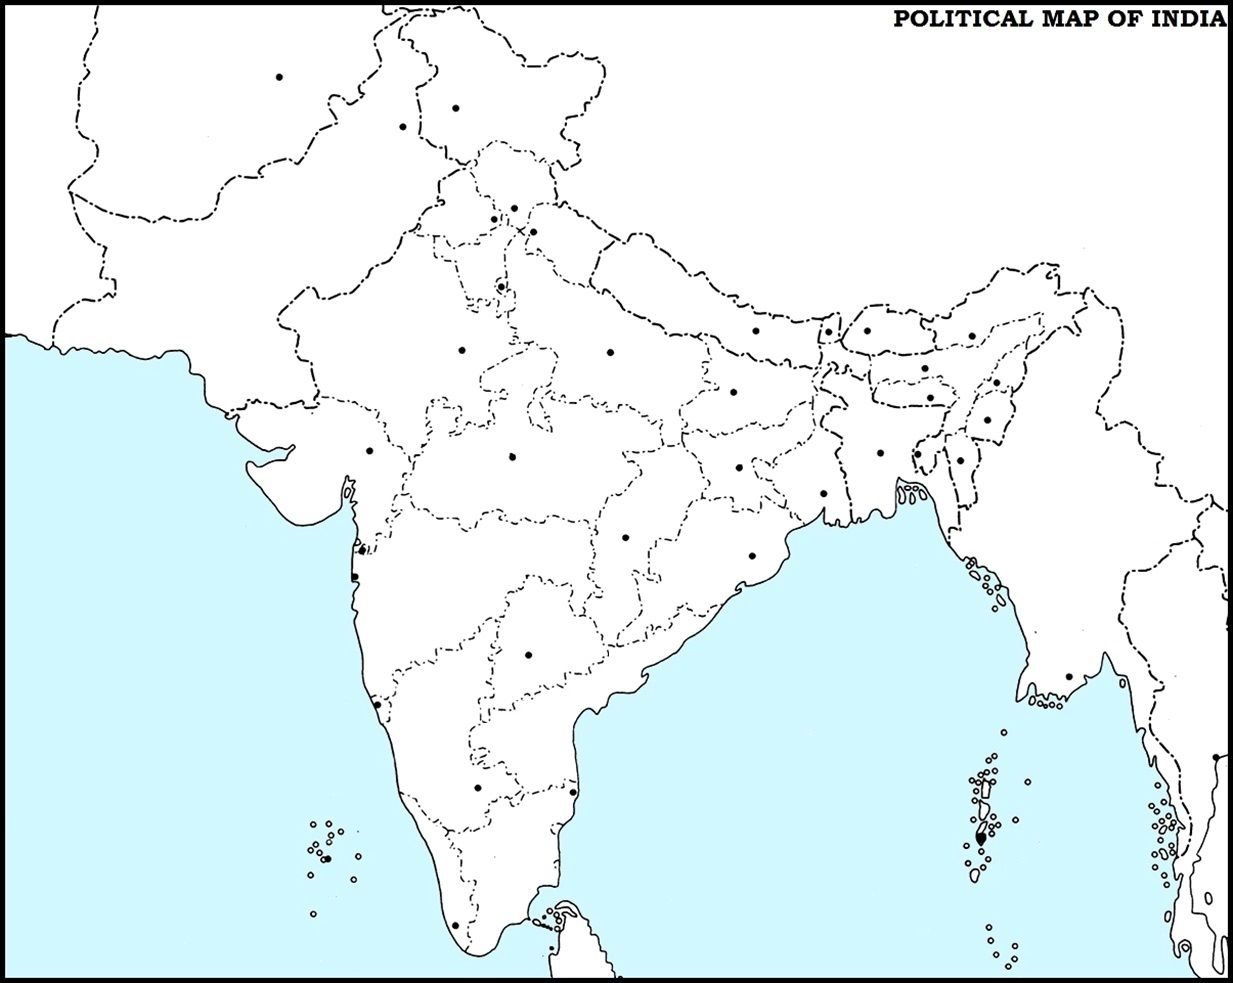 Political Map Of India Blank Image result for india political map blank | india political map  Political Map Of India Blank